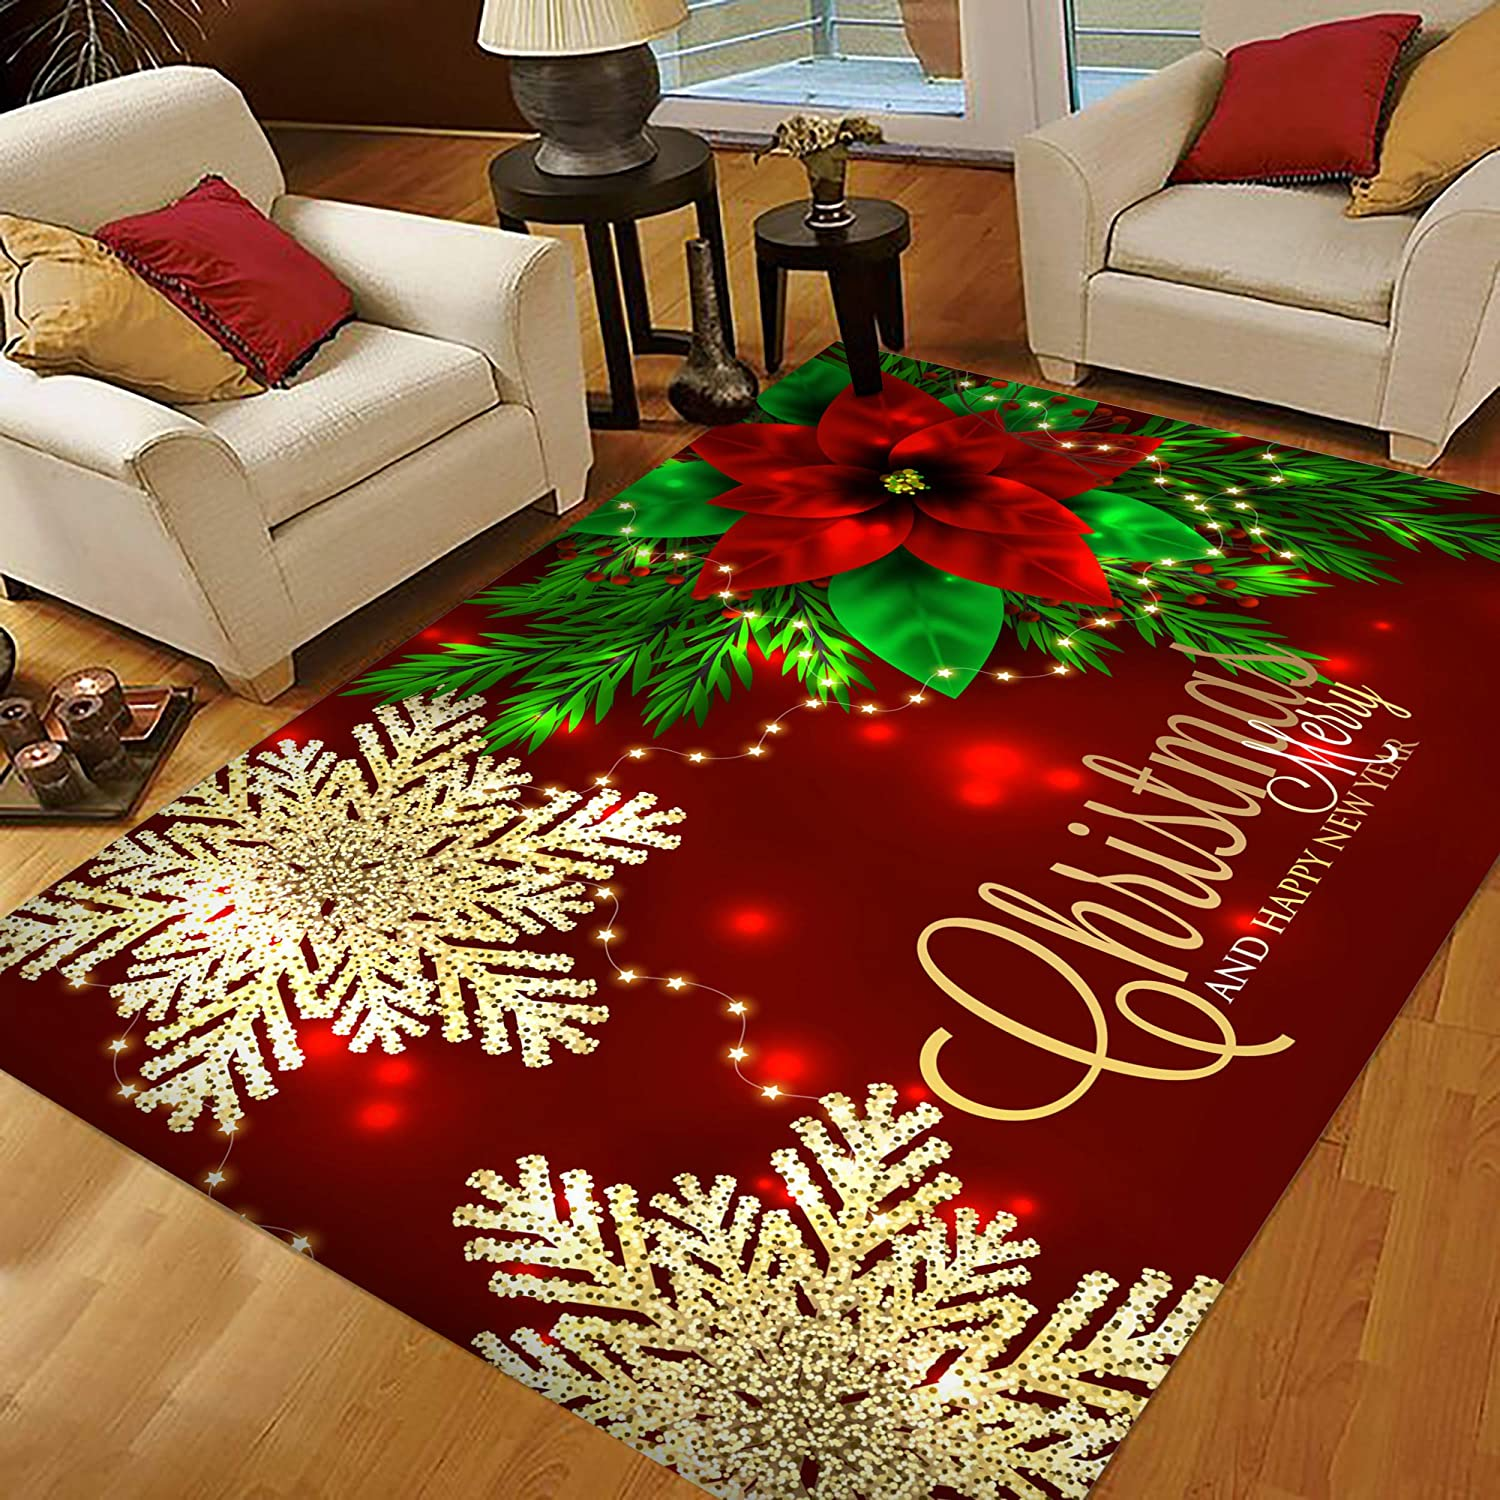 Amazon Com Christmas Area Rugs Area Rugs 5x7 For Living Room Bedroom Home Decorative Christmas Poinsettia And Snowflakes 1 Kitchen Dining